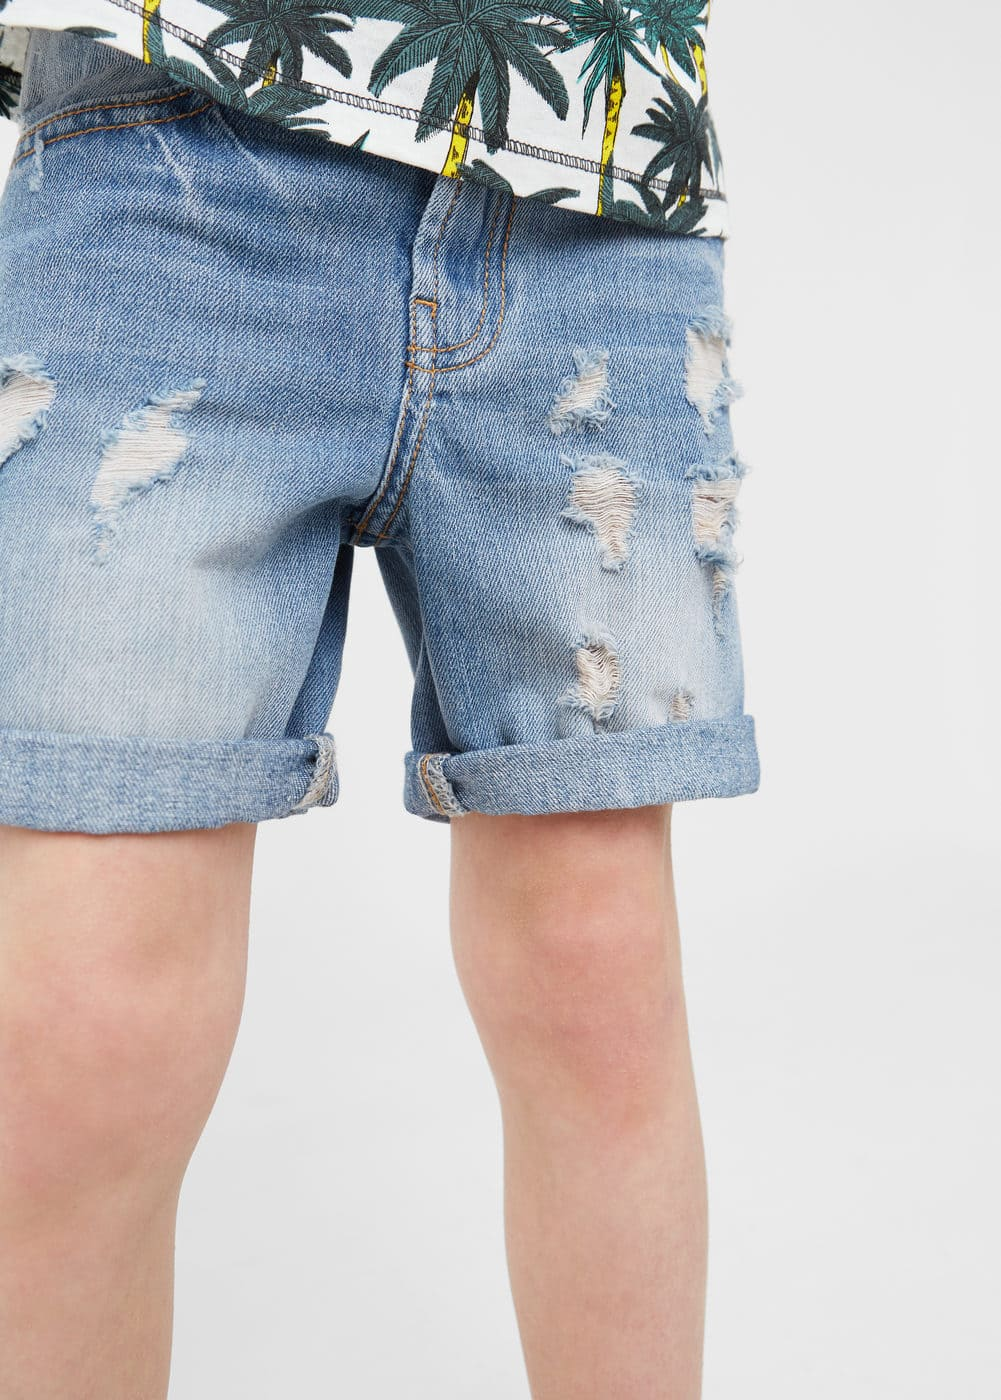 Bermudas denim rotos decorativos | MNG